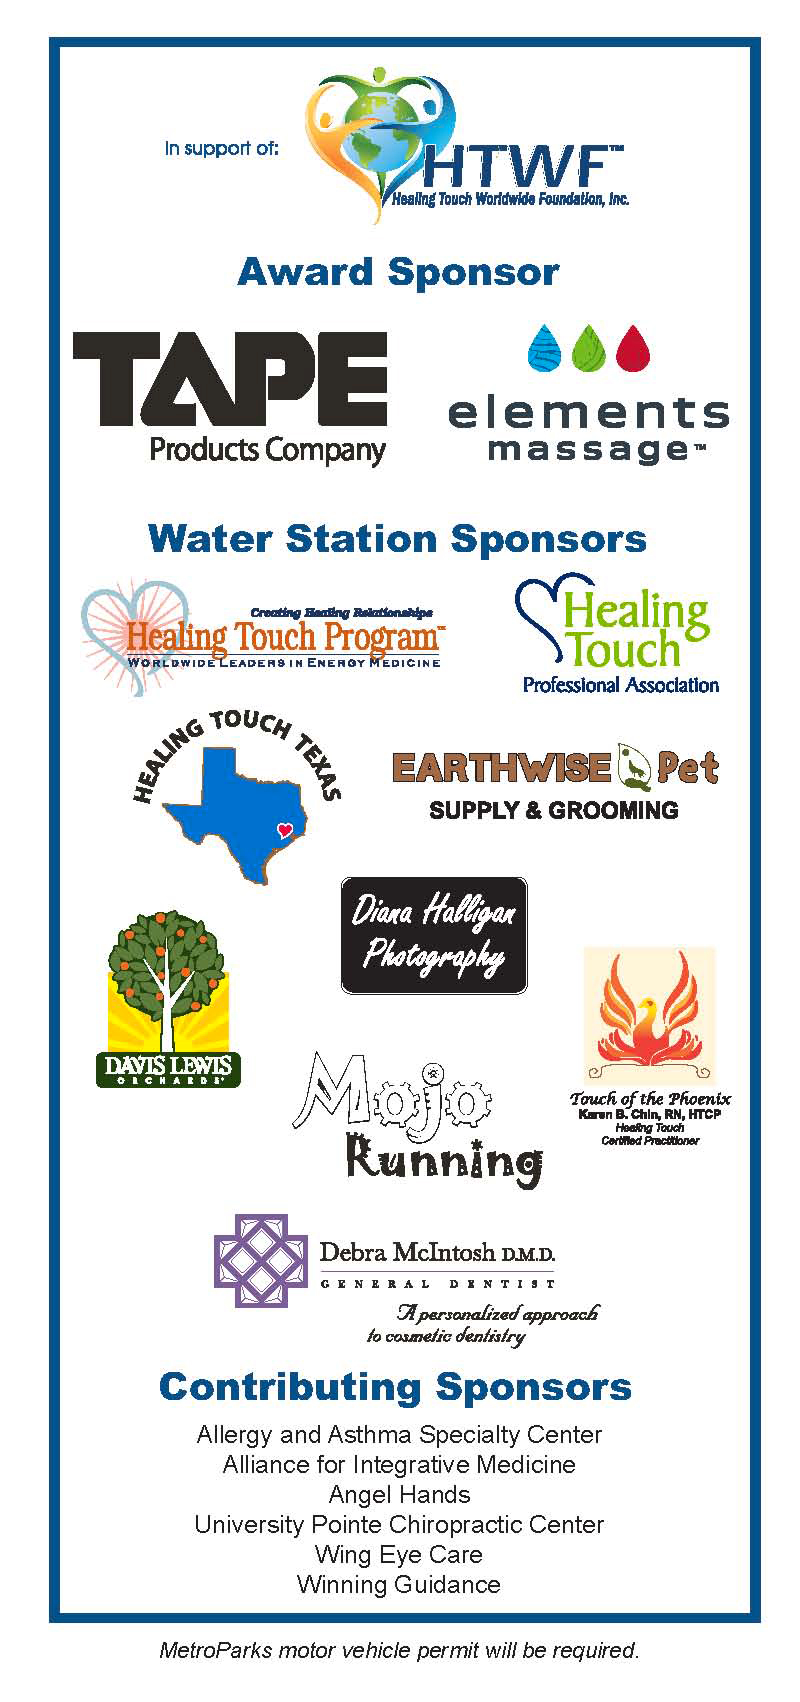 2017 5th Annual Heel to Heal Walk/Run Sponsors